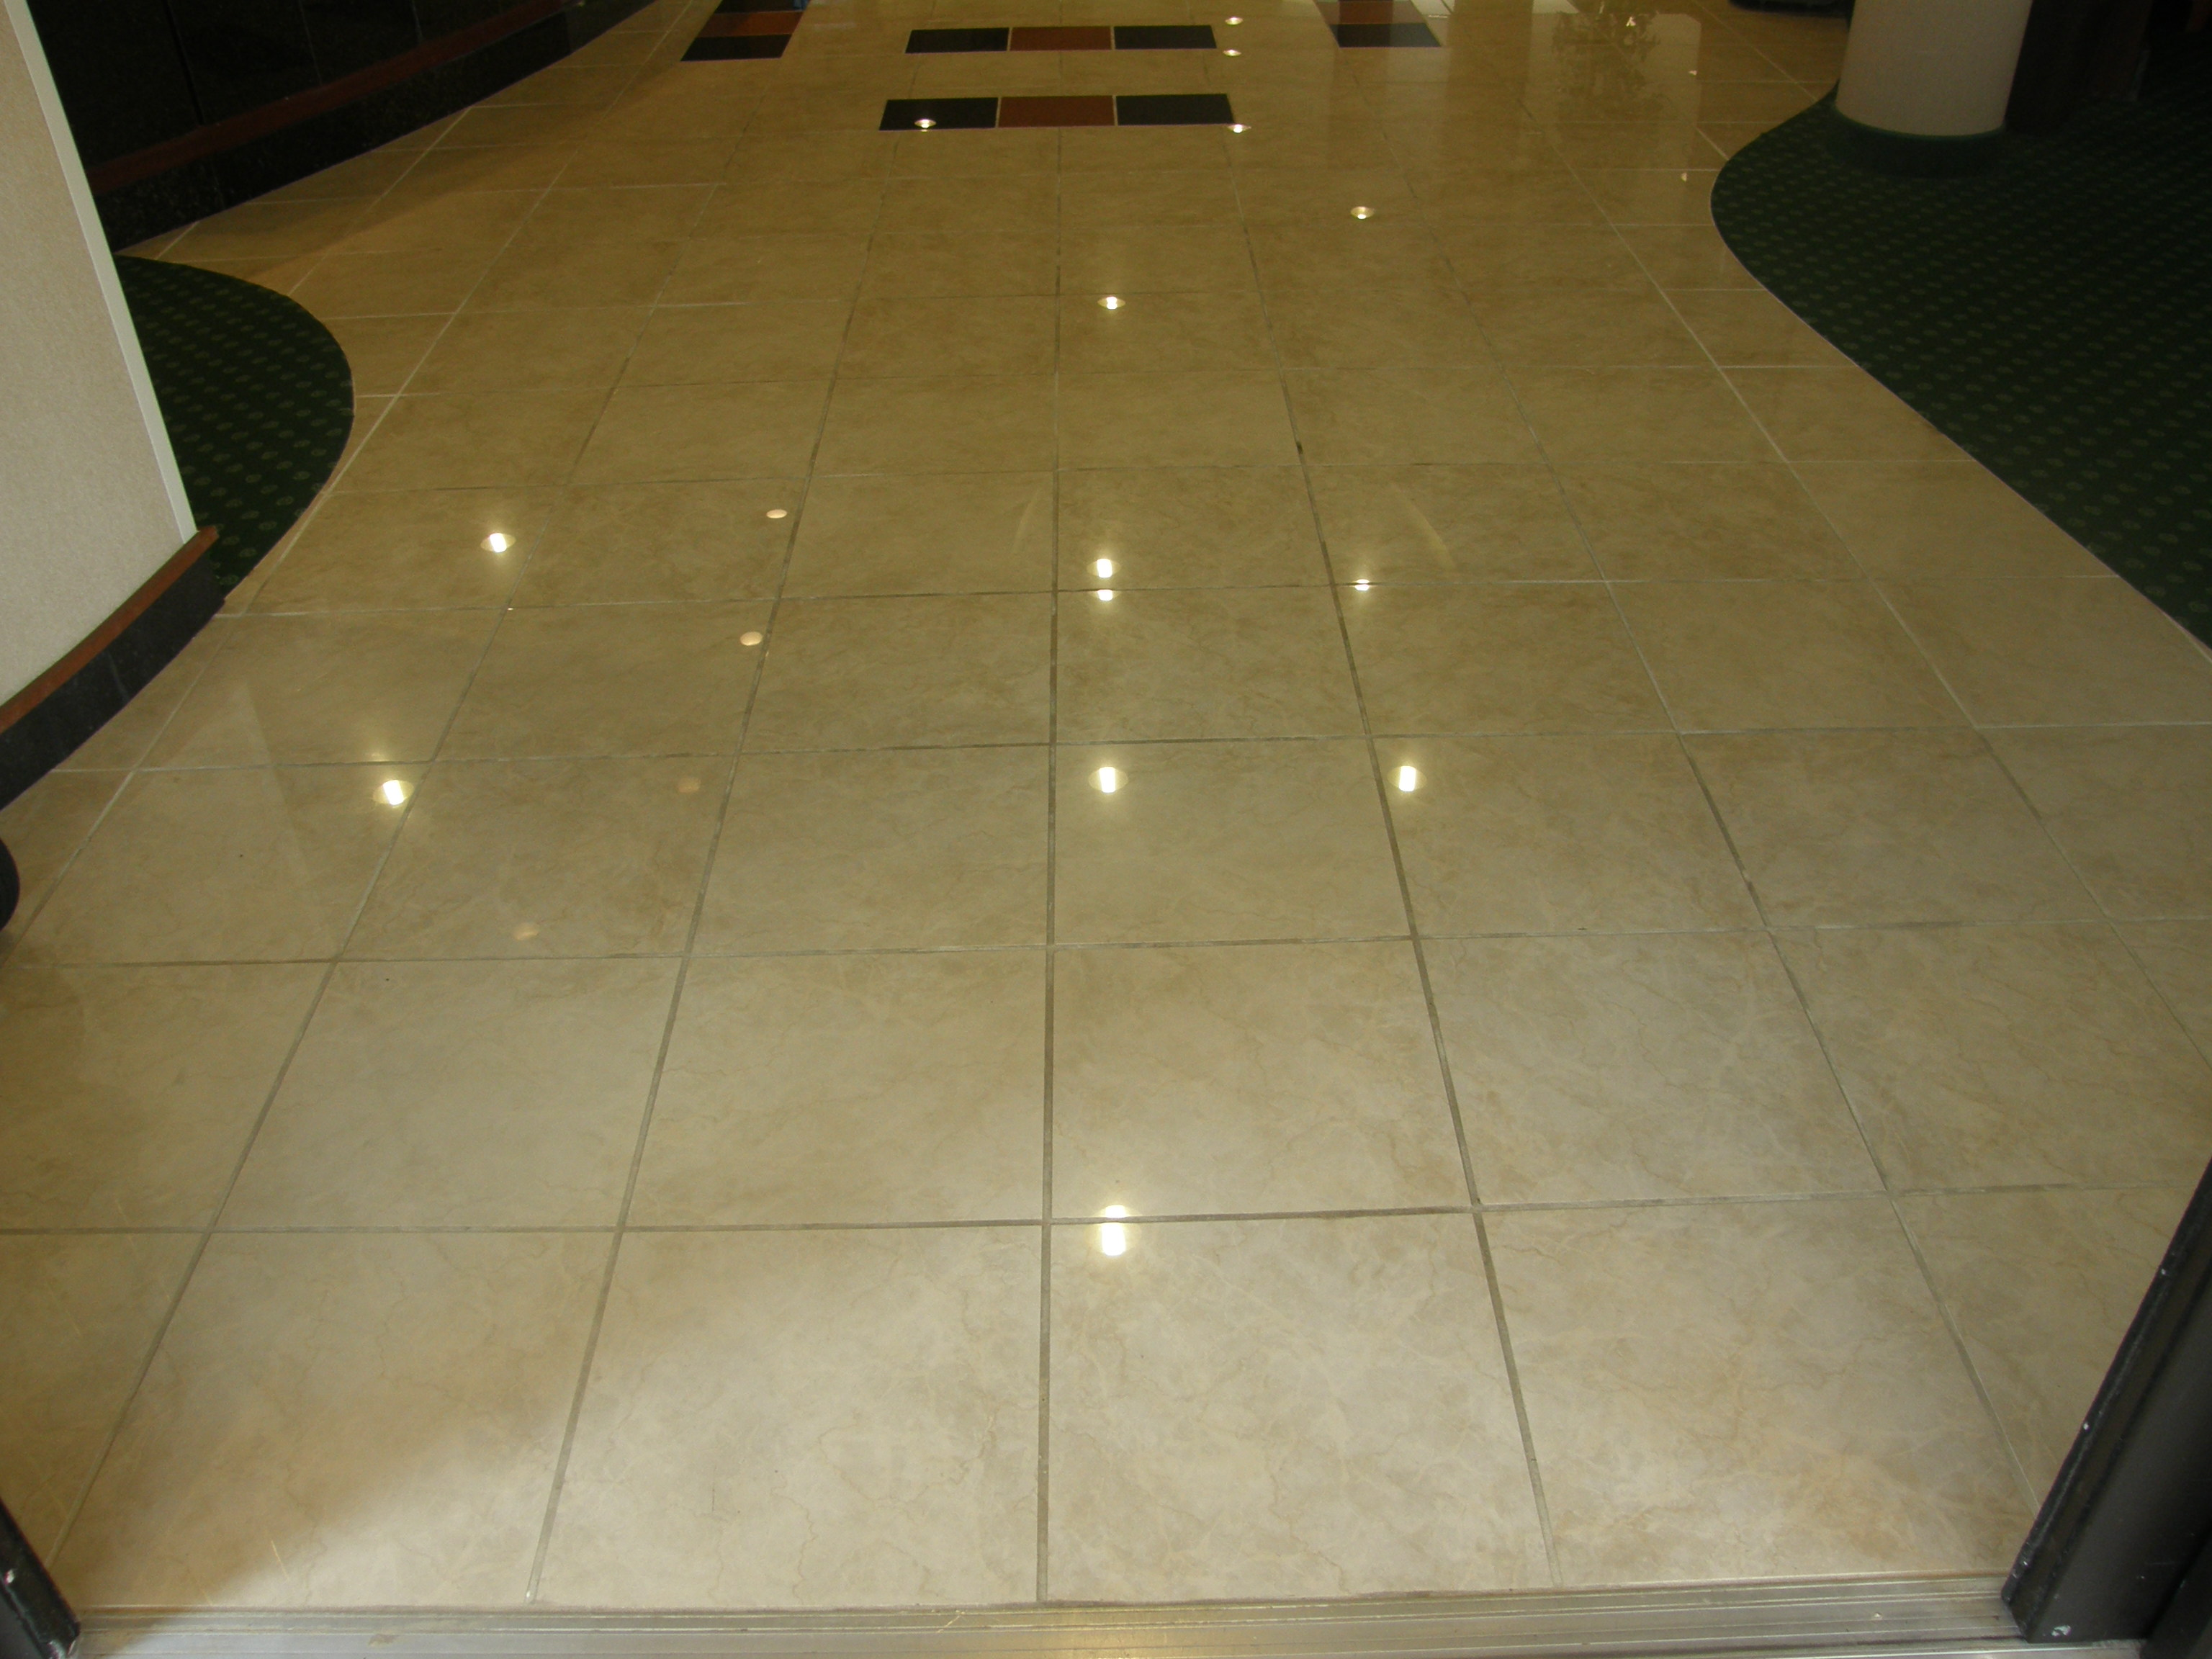 Grout Works Grout Cleaning, Recoloring and Sealing ...